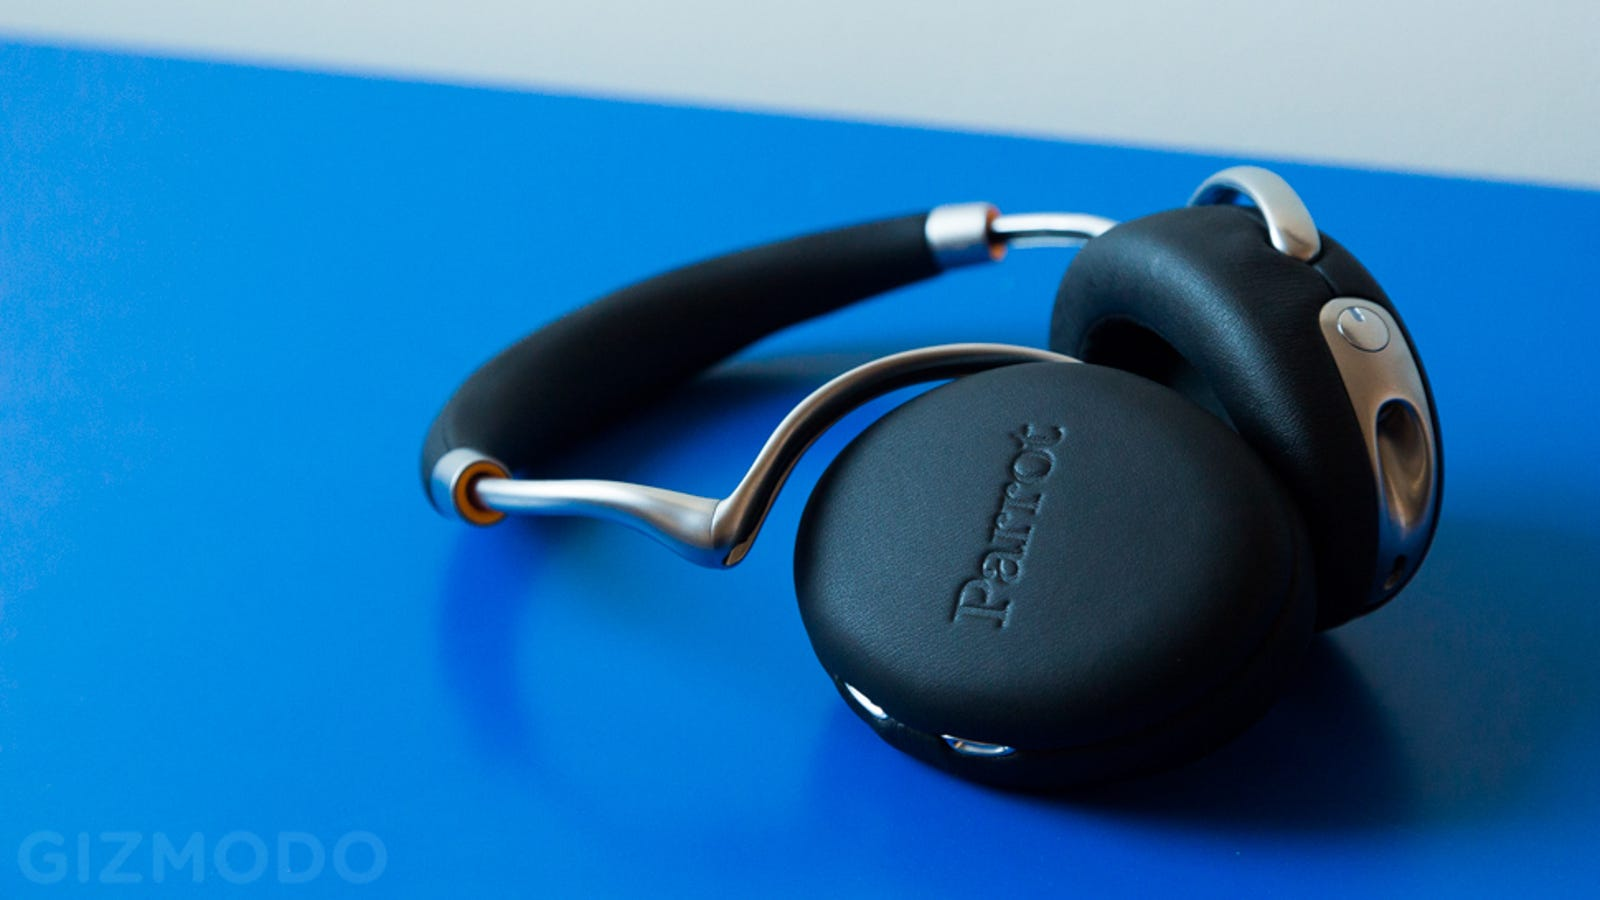 red earbuds one piece set - Parrot Zik 2.0 Hands-On: The World's Most Advanced Headphones? Maybe.